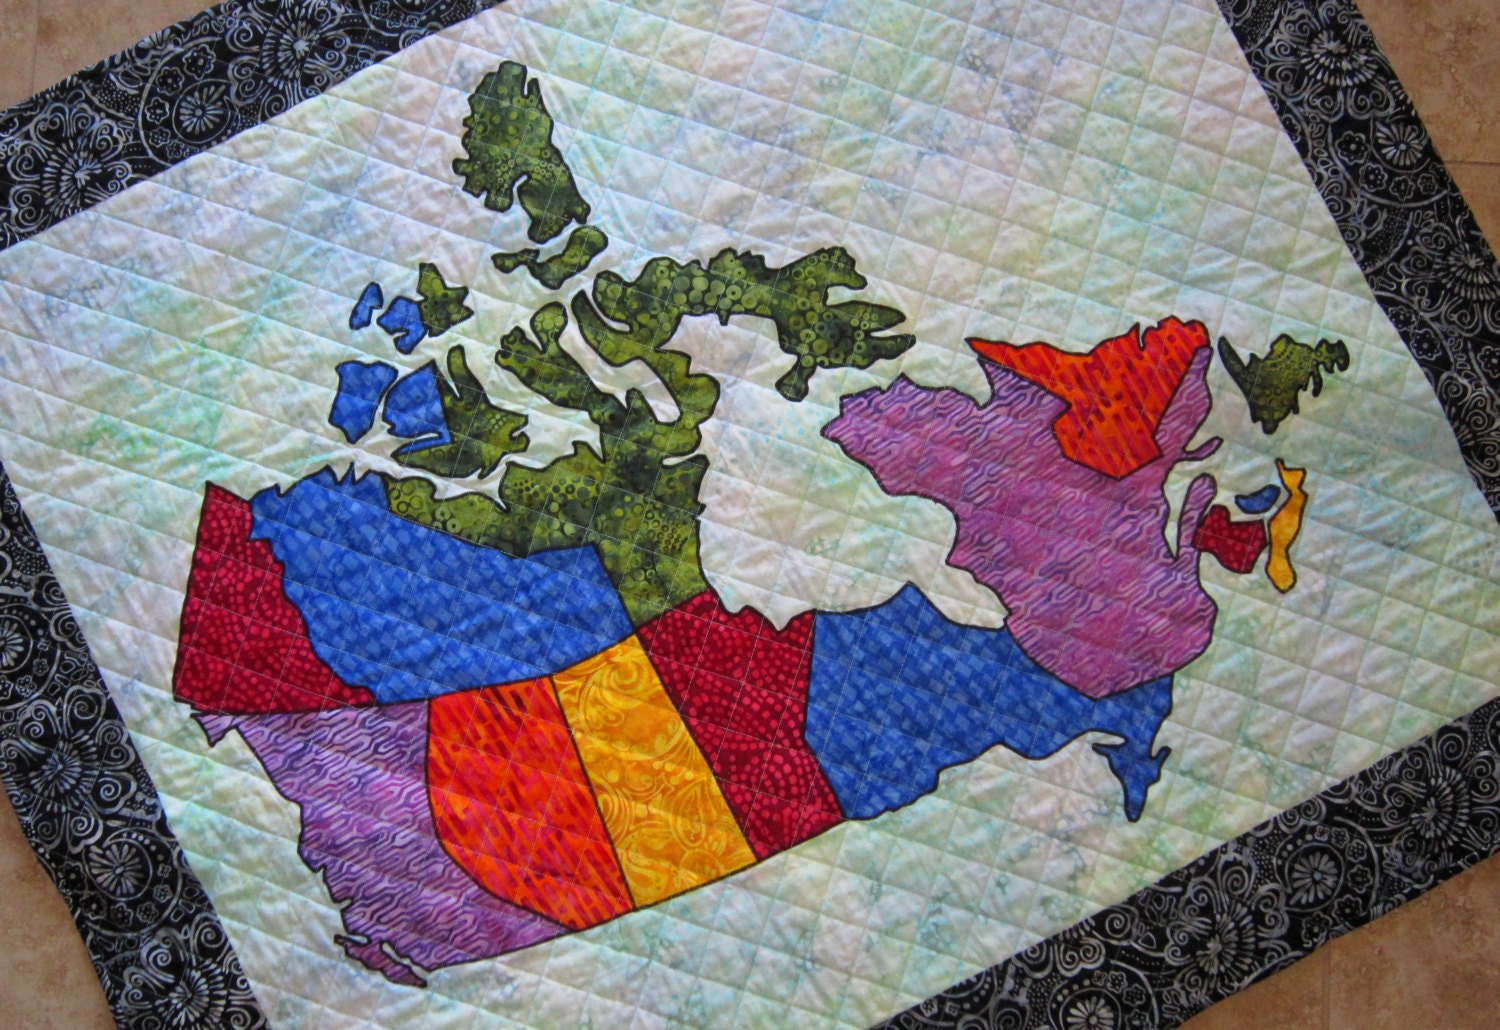 CANADA PATCHWORK MAP Quilt Pattern from Quilts by Elena Full Sized  Templates and Clear Instructions